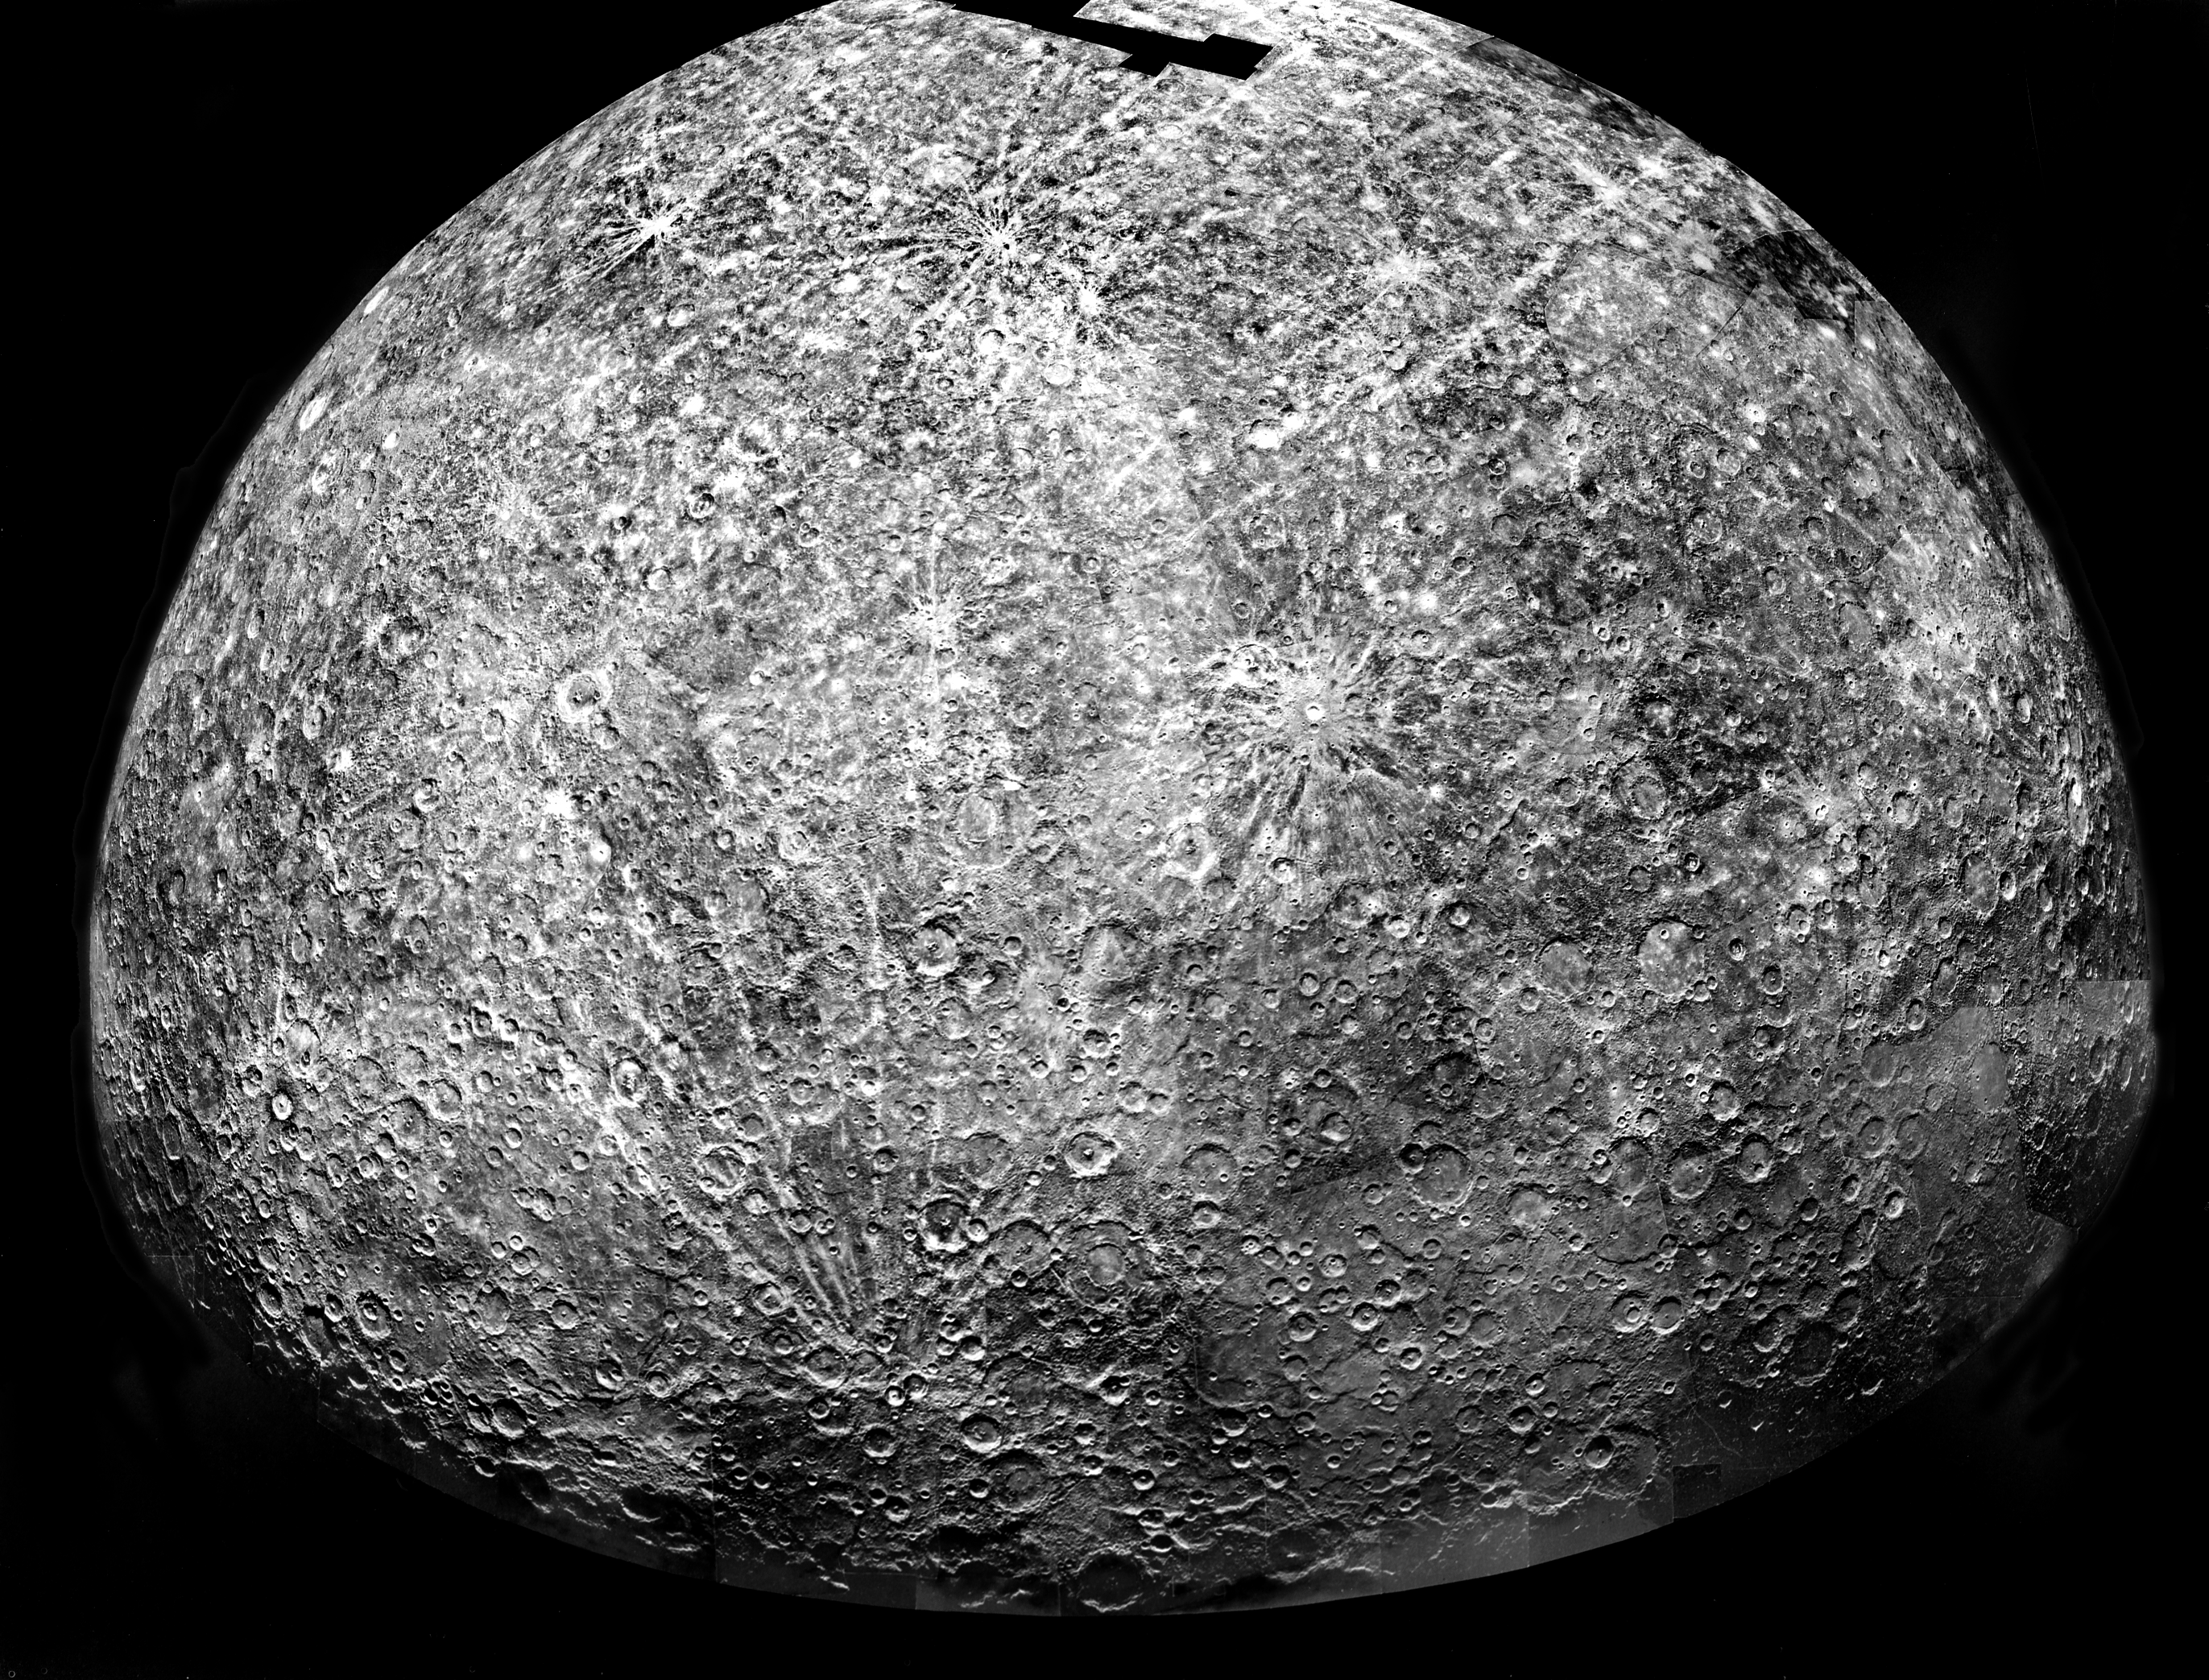 mercury pictures from nasa - photo #4